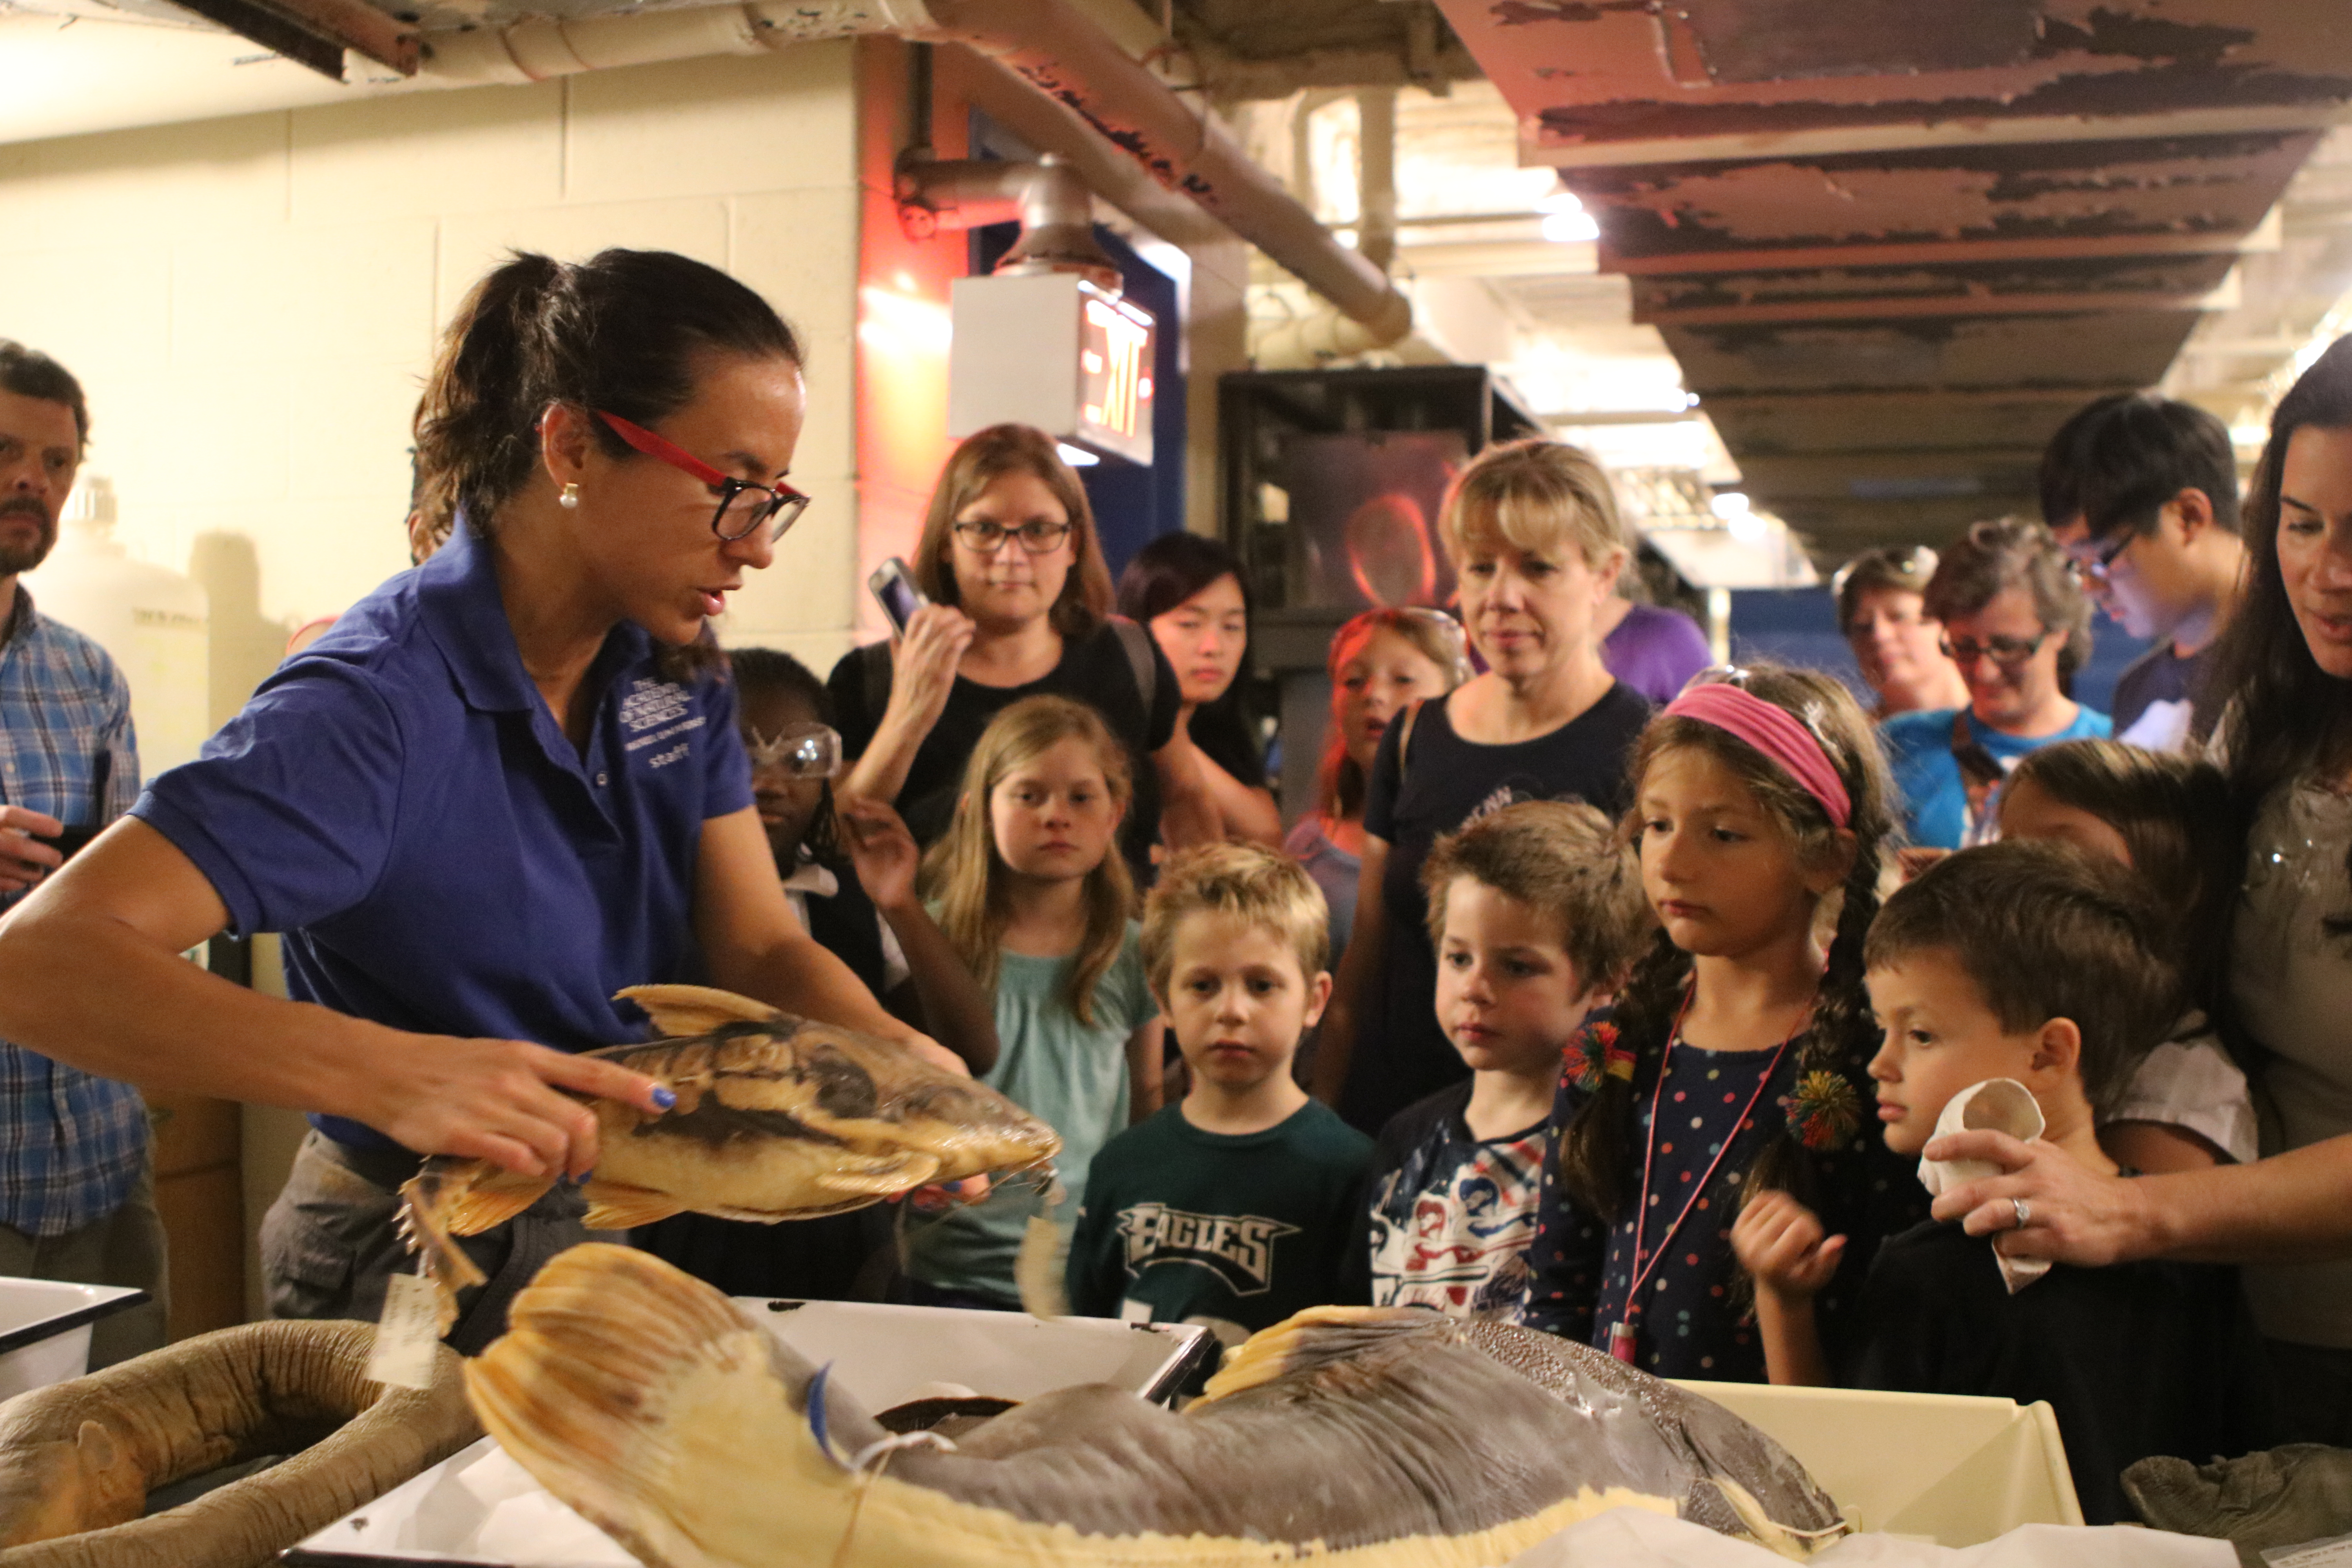 Arce Hernandez's favorite specimens from the Ichthyology Collection include a red-tail catfish, a big stingray, and a big electric eel.